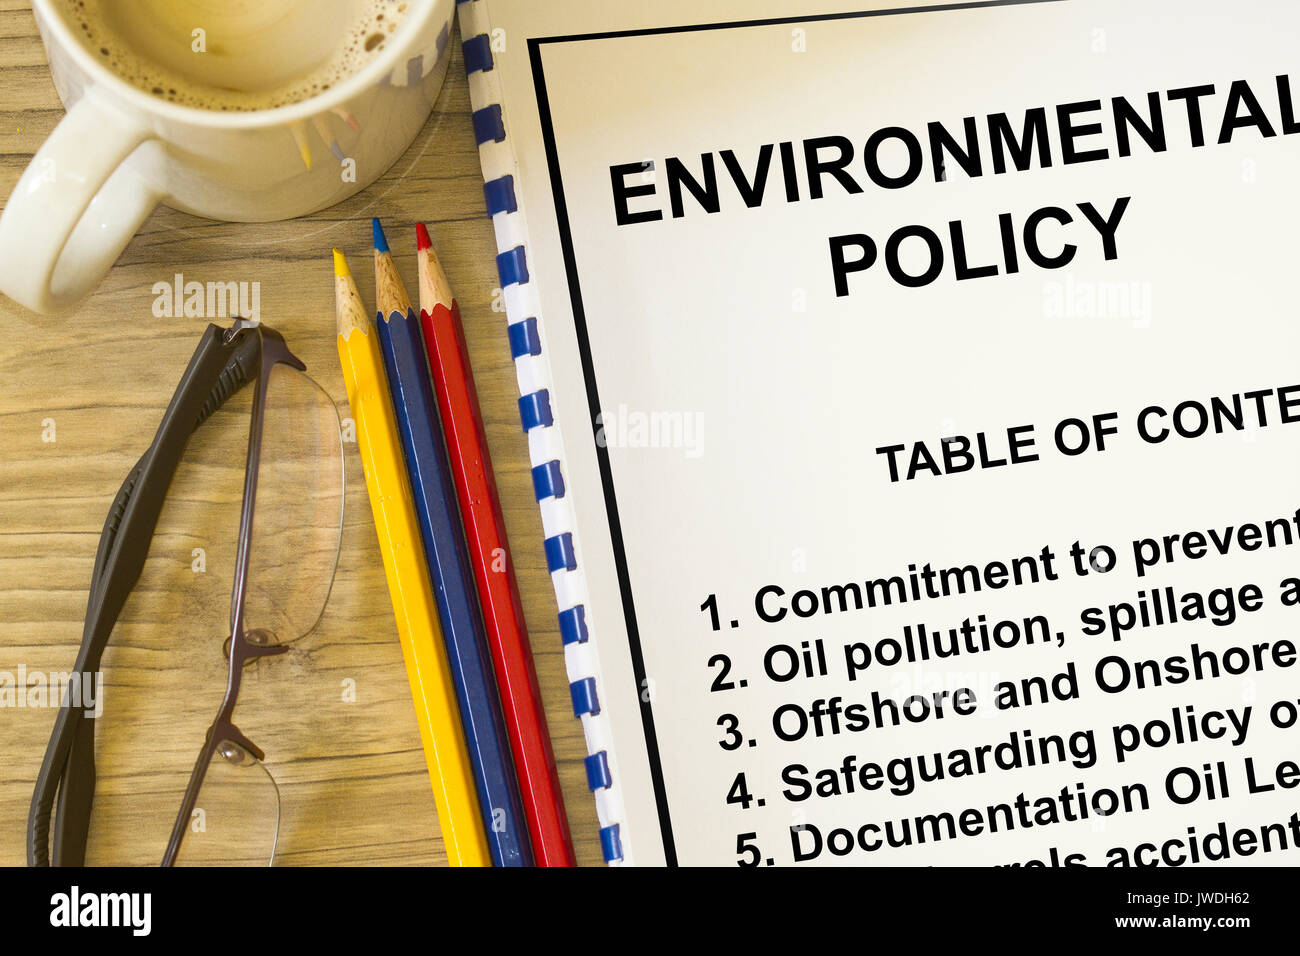 Environmental policy and safeguarding concept- with table of contents on a lecture coversheet. - Stock Image